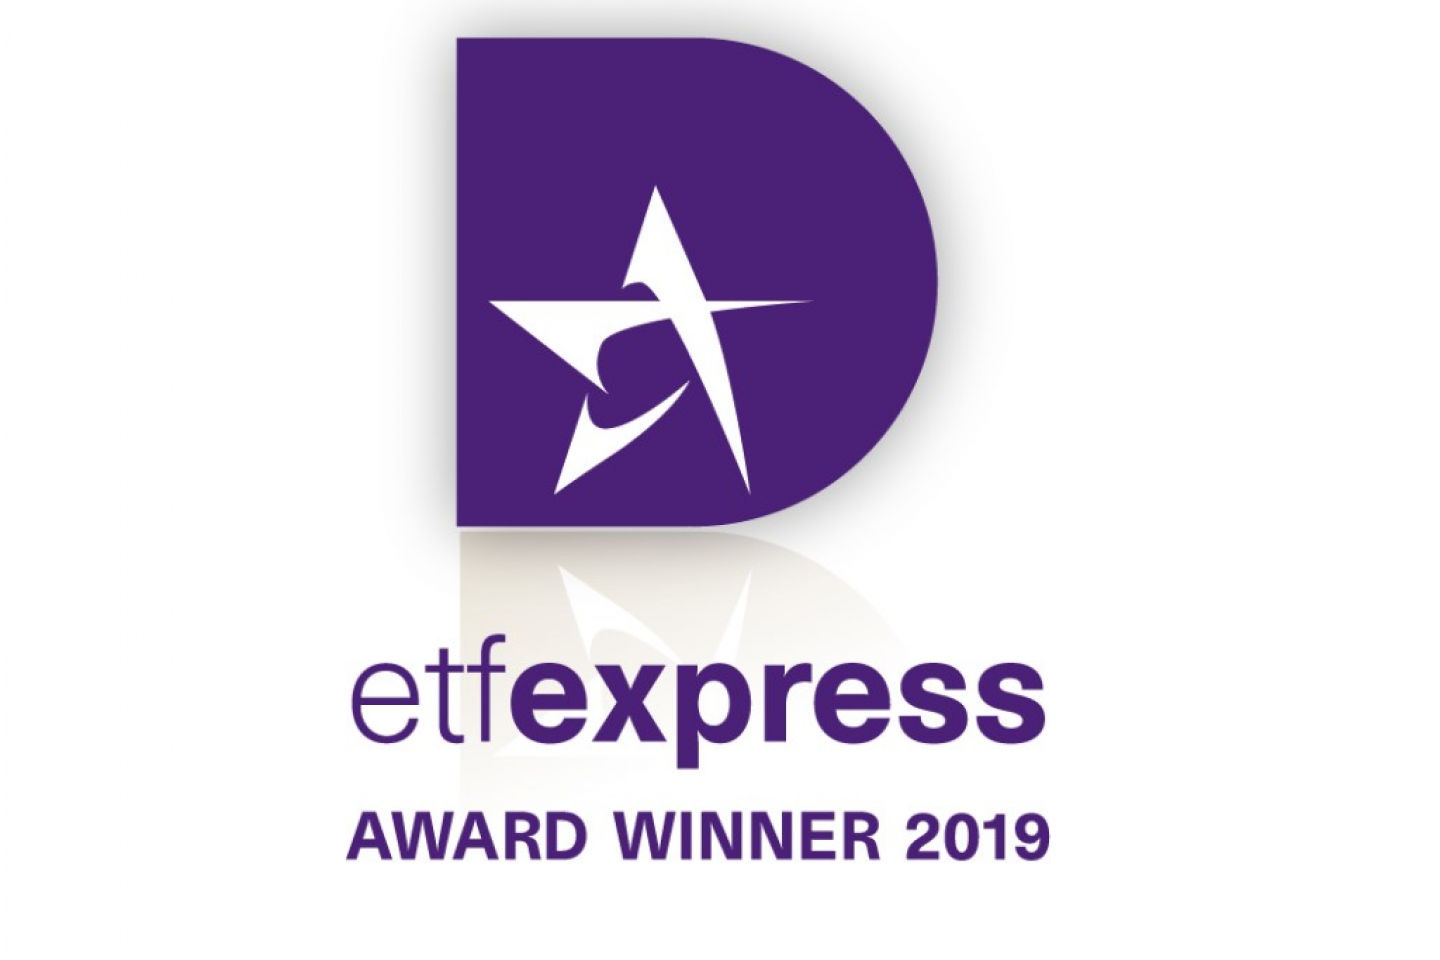 ETF Express award winner 2019